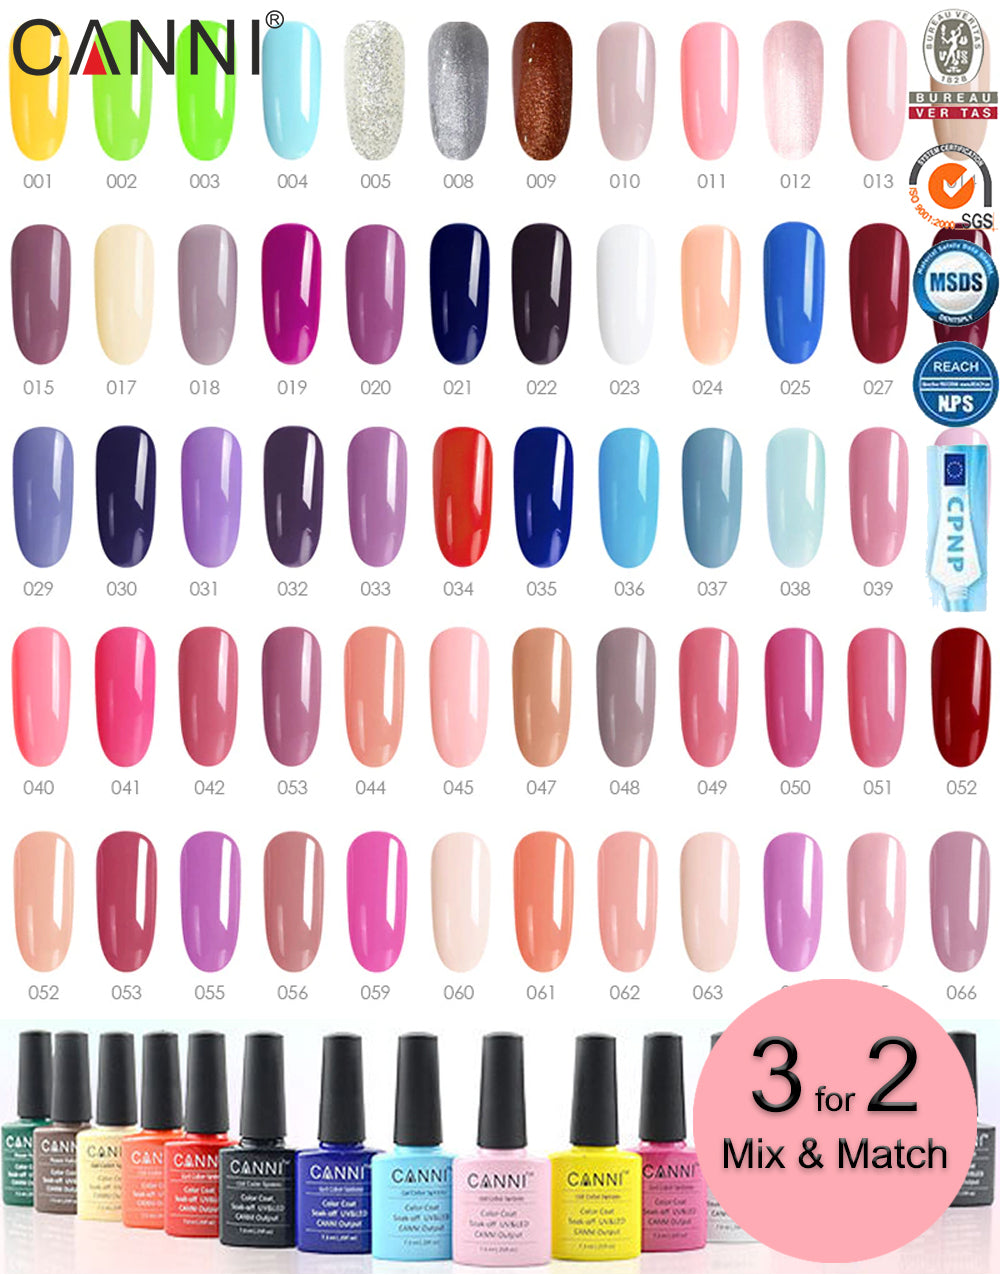 Canni Classic Range Soak Off UV / LED Nail Gel Polish Varnish - Shade 001 to 100